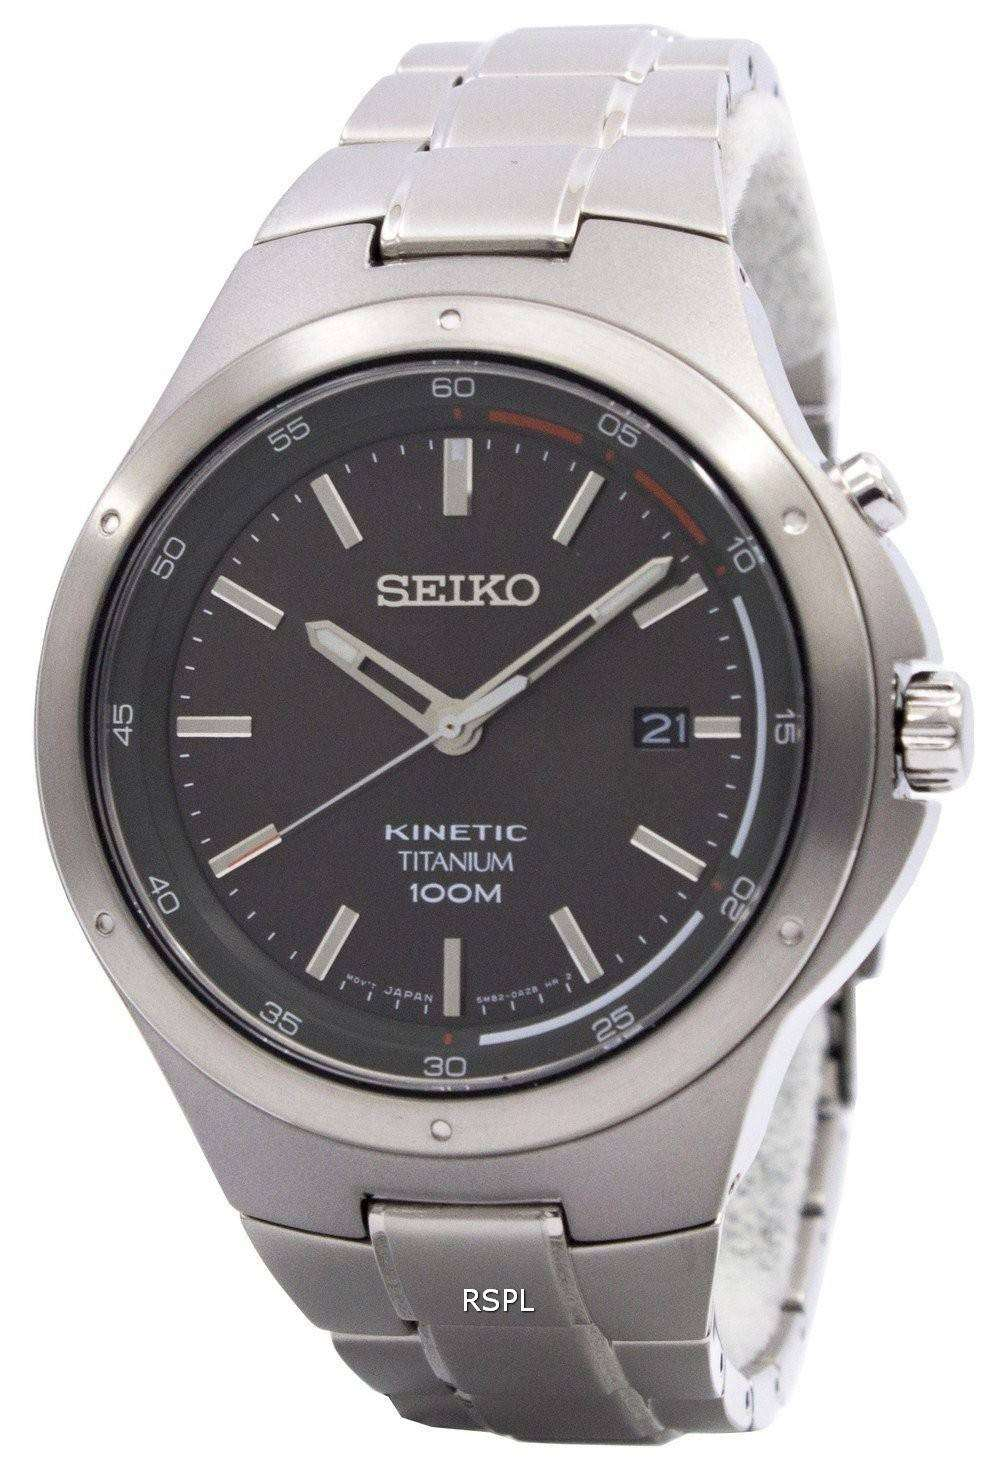 Seiko kinetic titanium power reserve ska713p1 ska713p ska713 men 39 s watch downunderwatches for Titanium watches